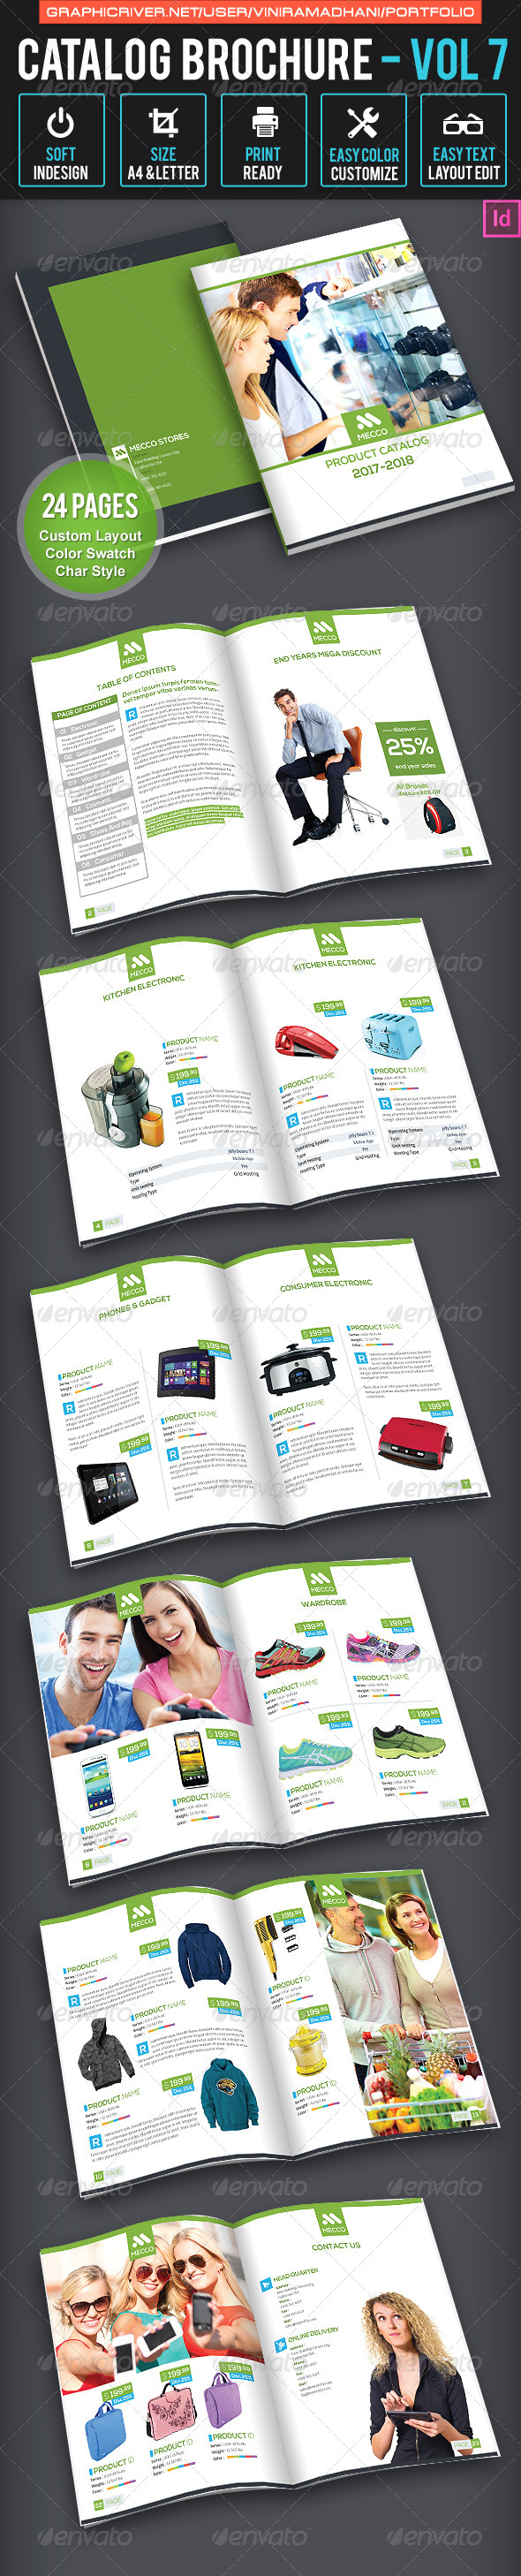 Product Catalogs Brochure | Volume 7 - Catalogs Brochures